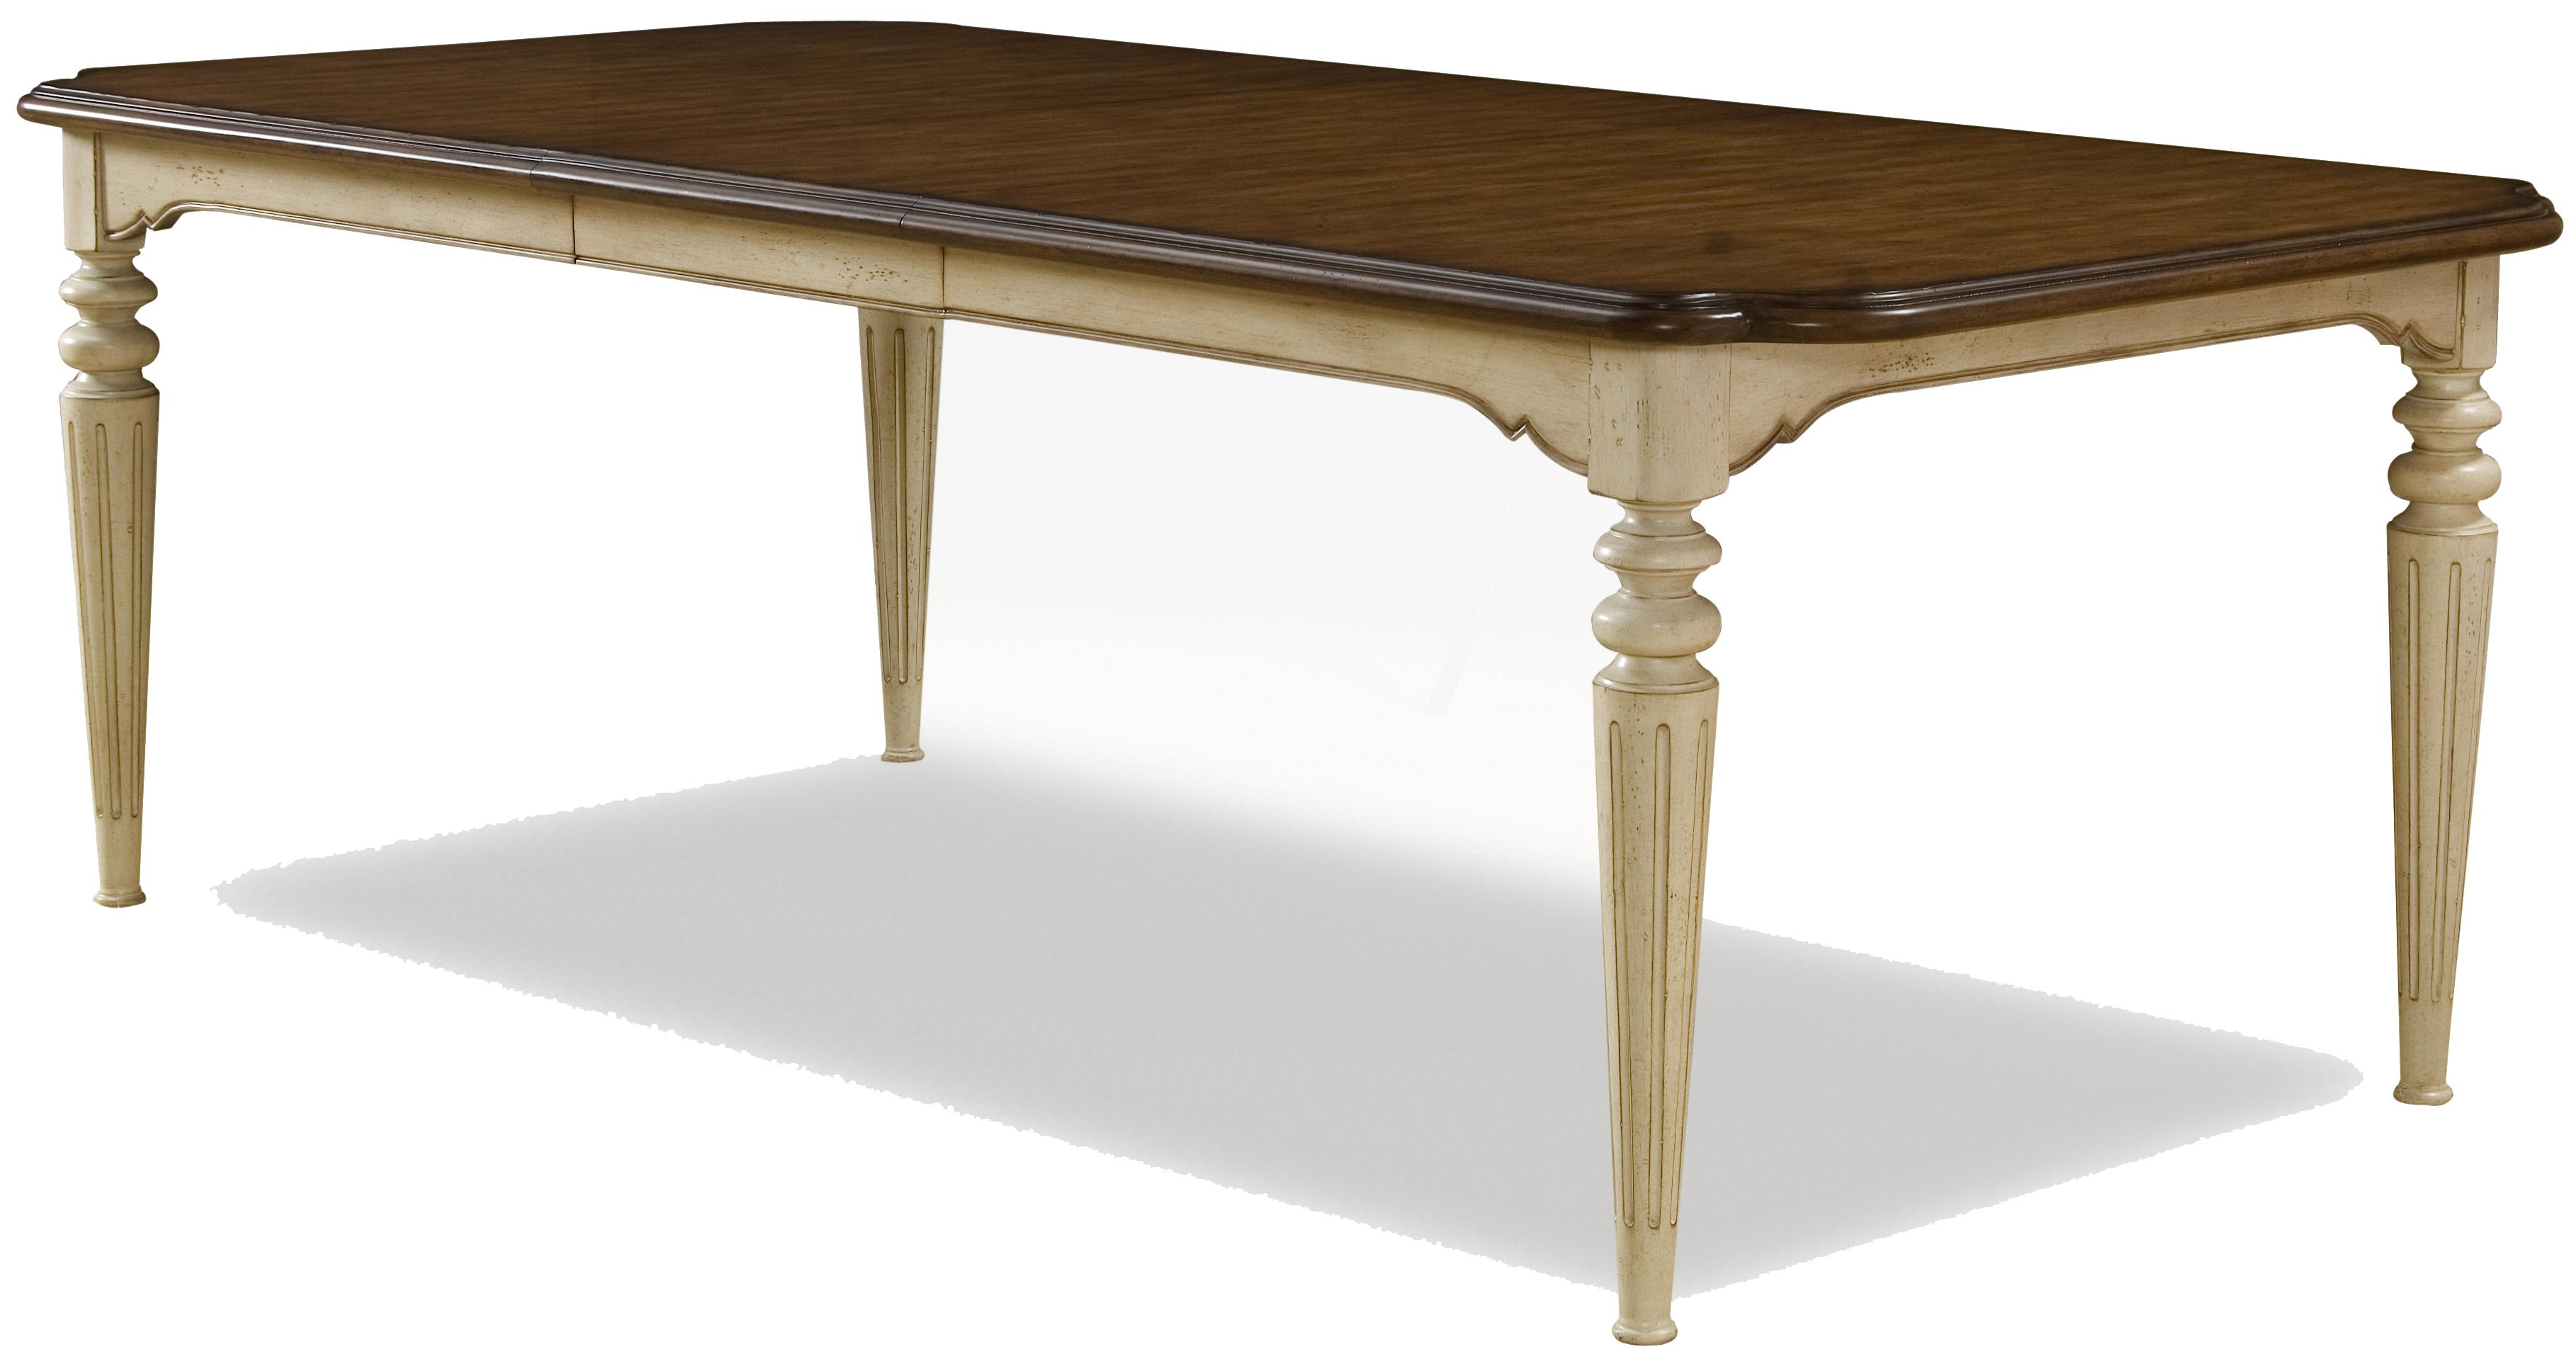 ART Furniture Inc Provenance Rectangular Dining Table